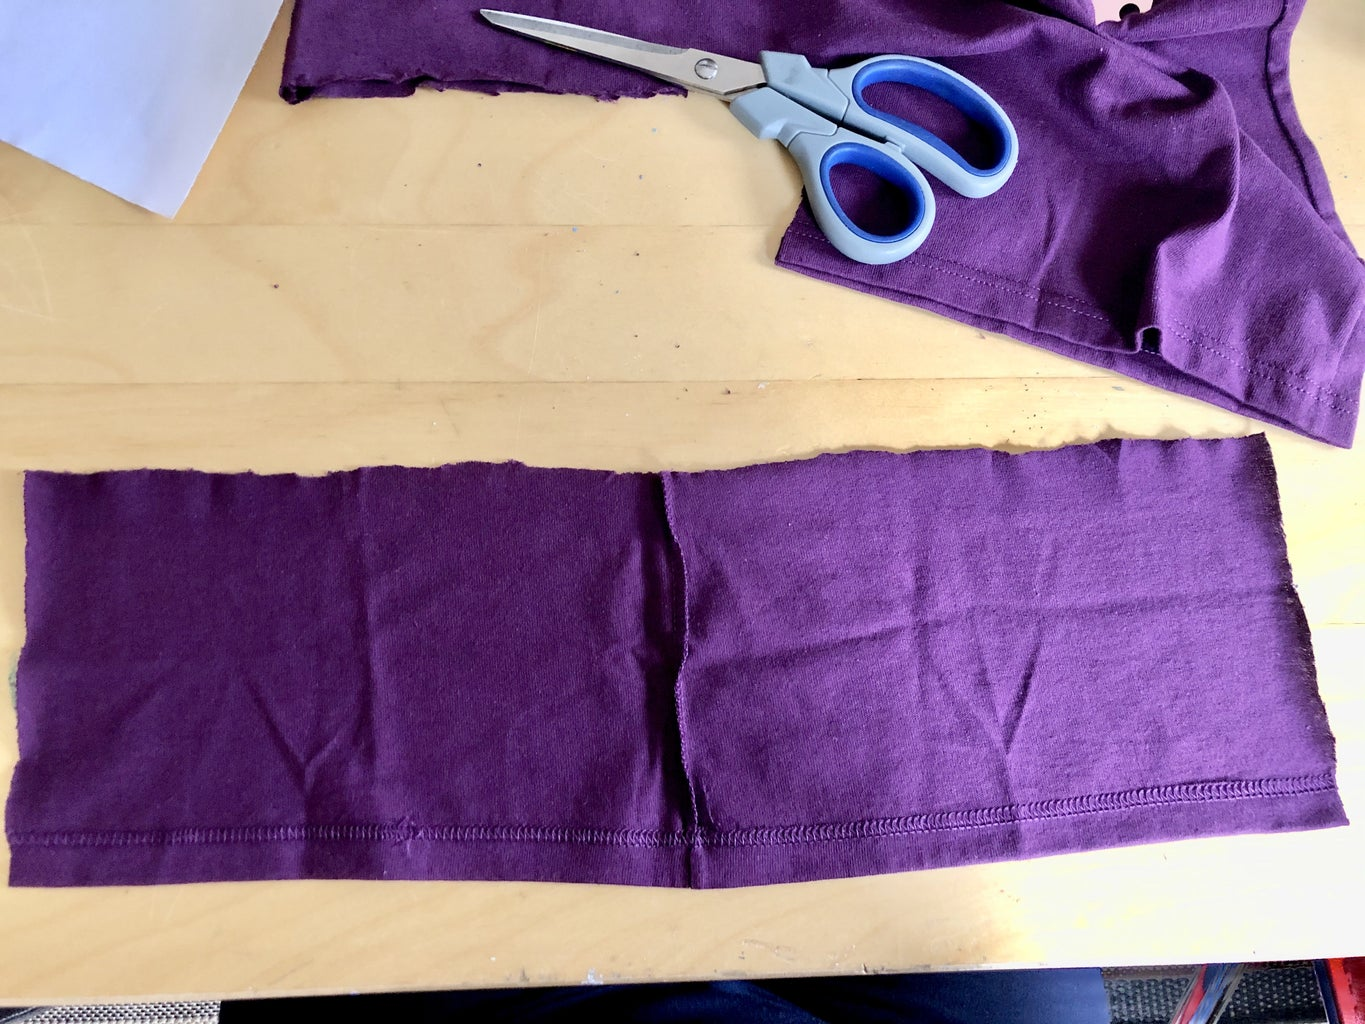 Cut the Fabric for the Mask